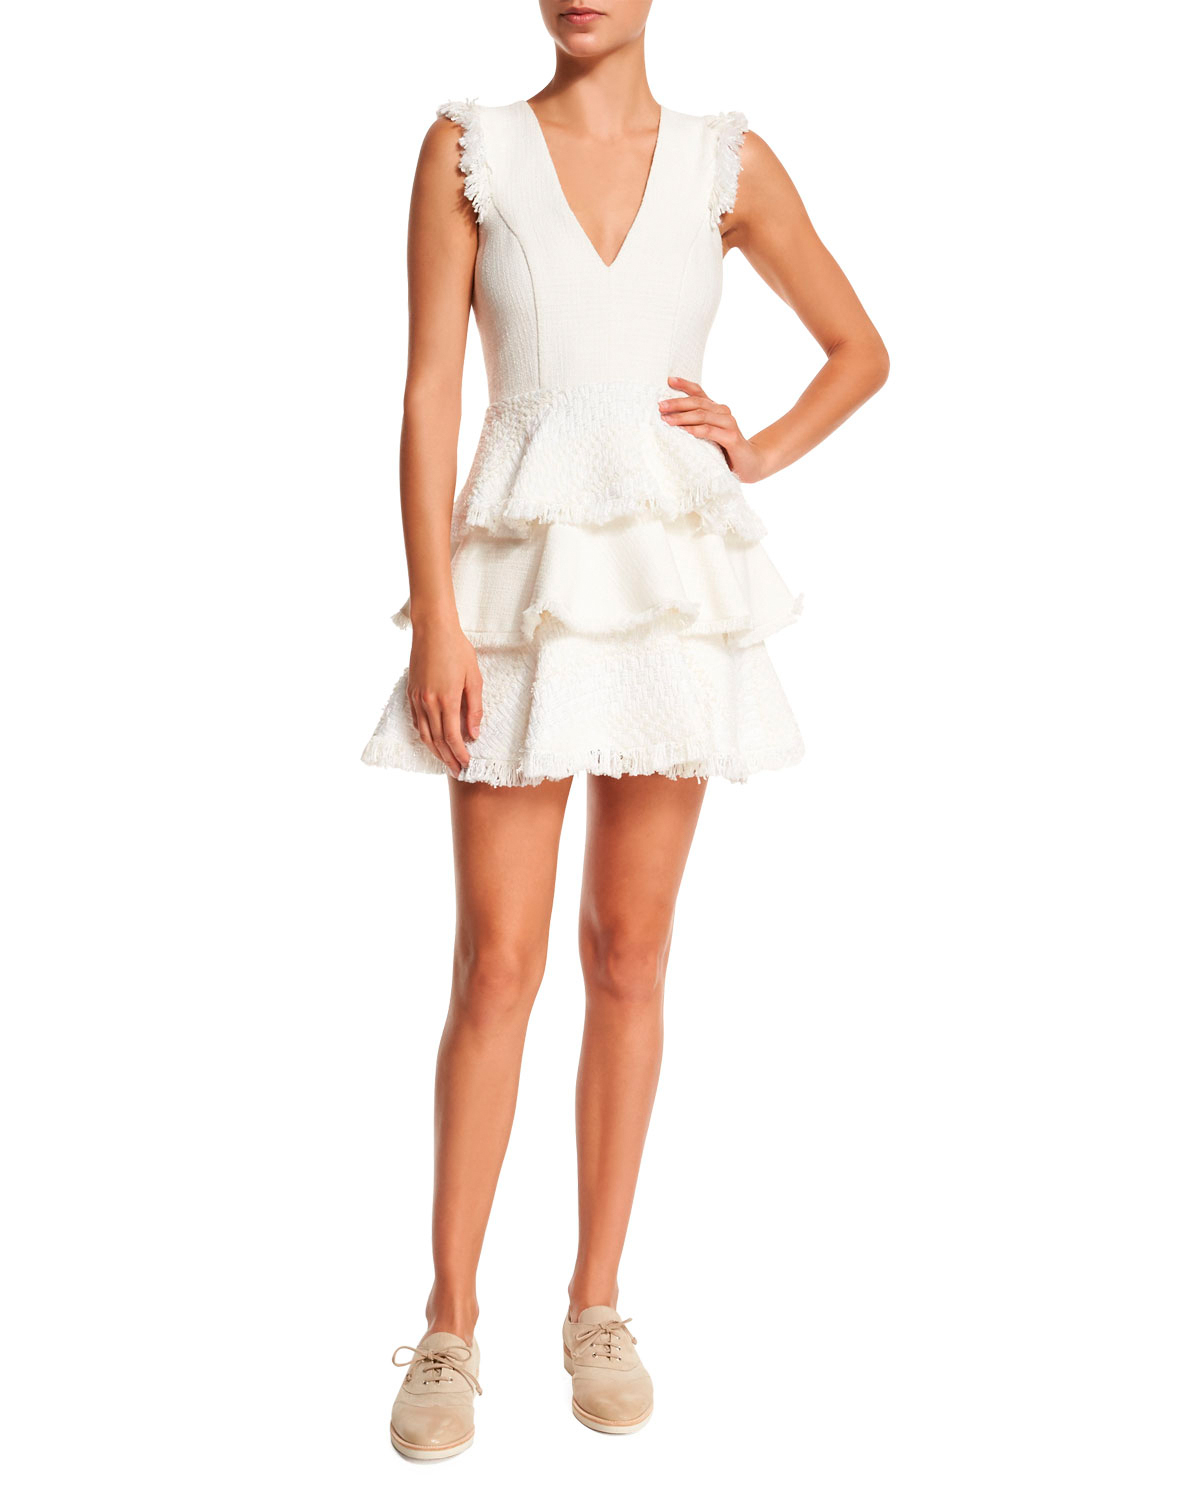 little-white-dress-alexis-693-nm-1115.jpg